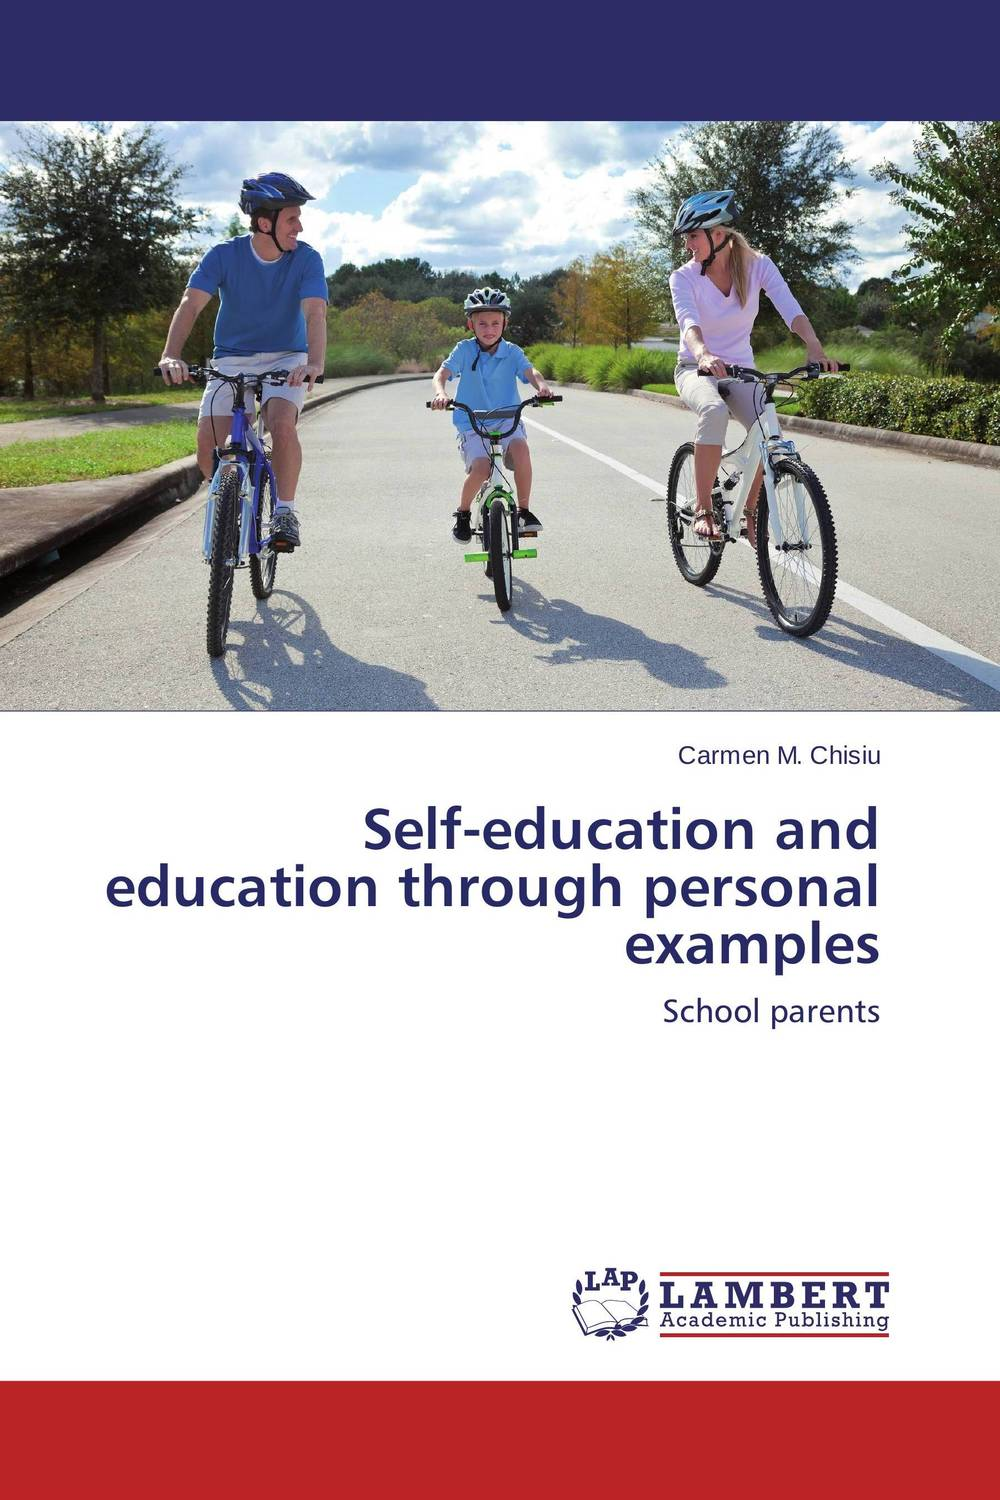 Self-education and education through personal examples